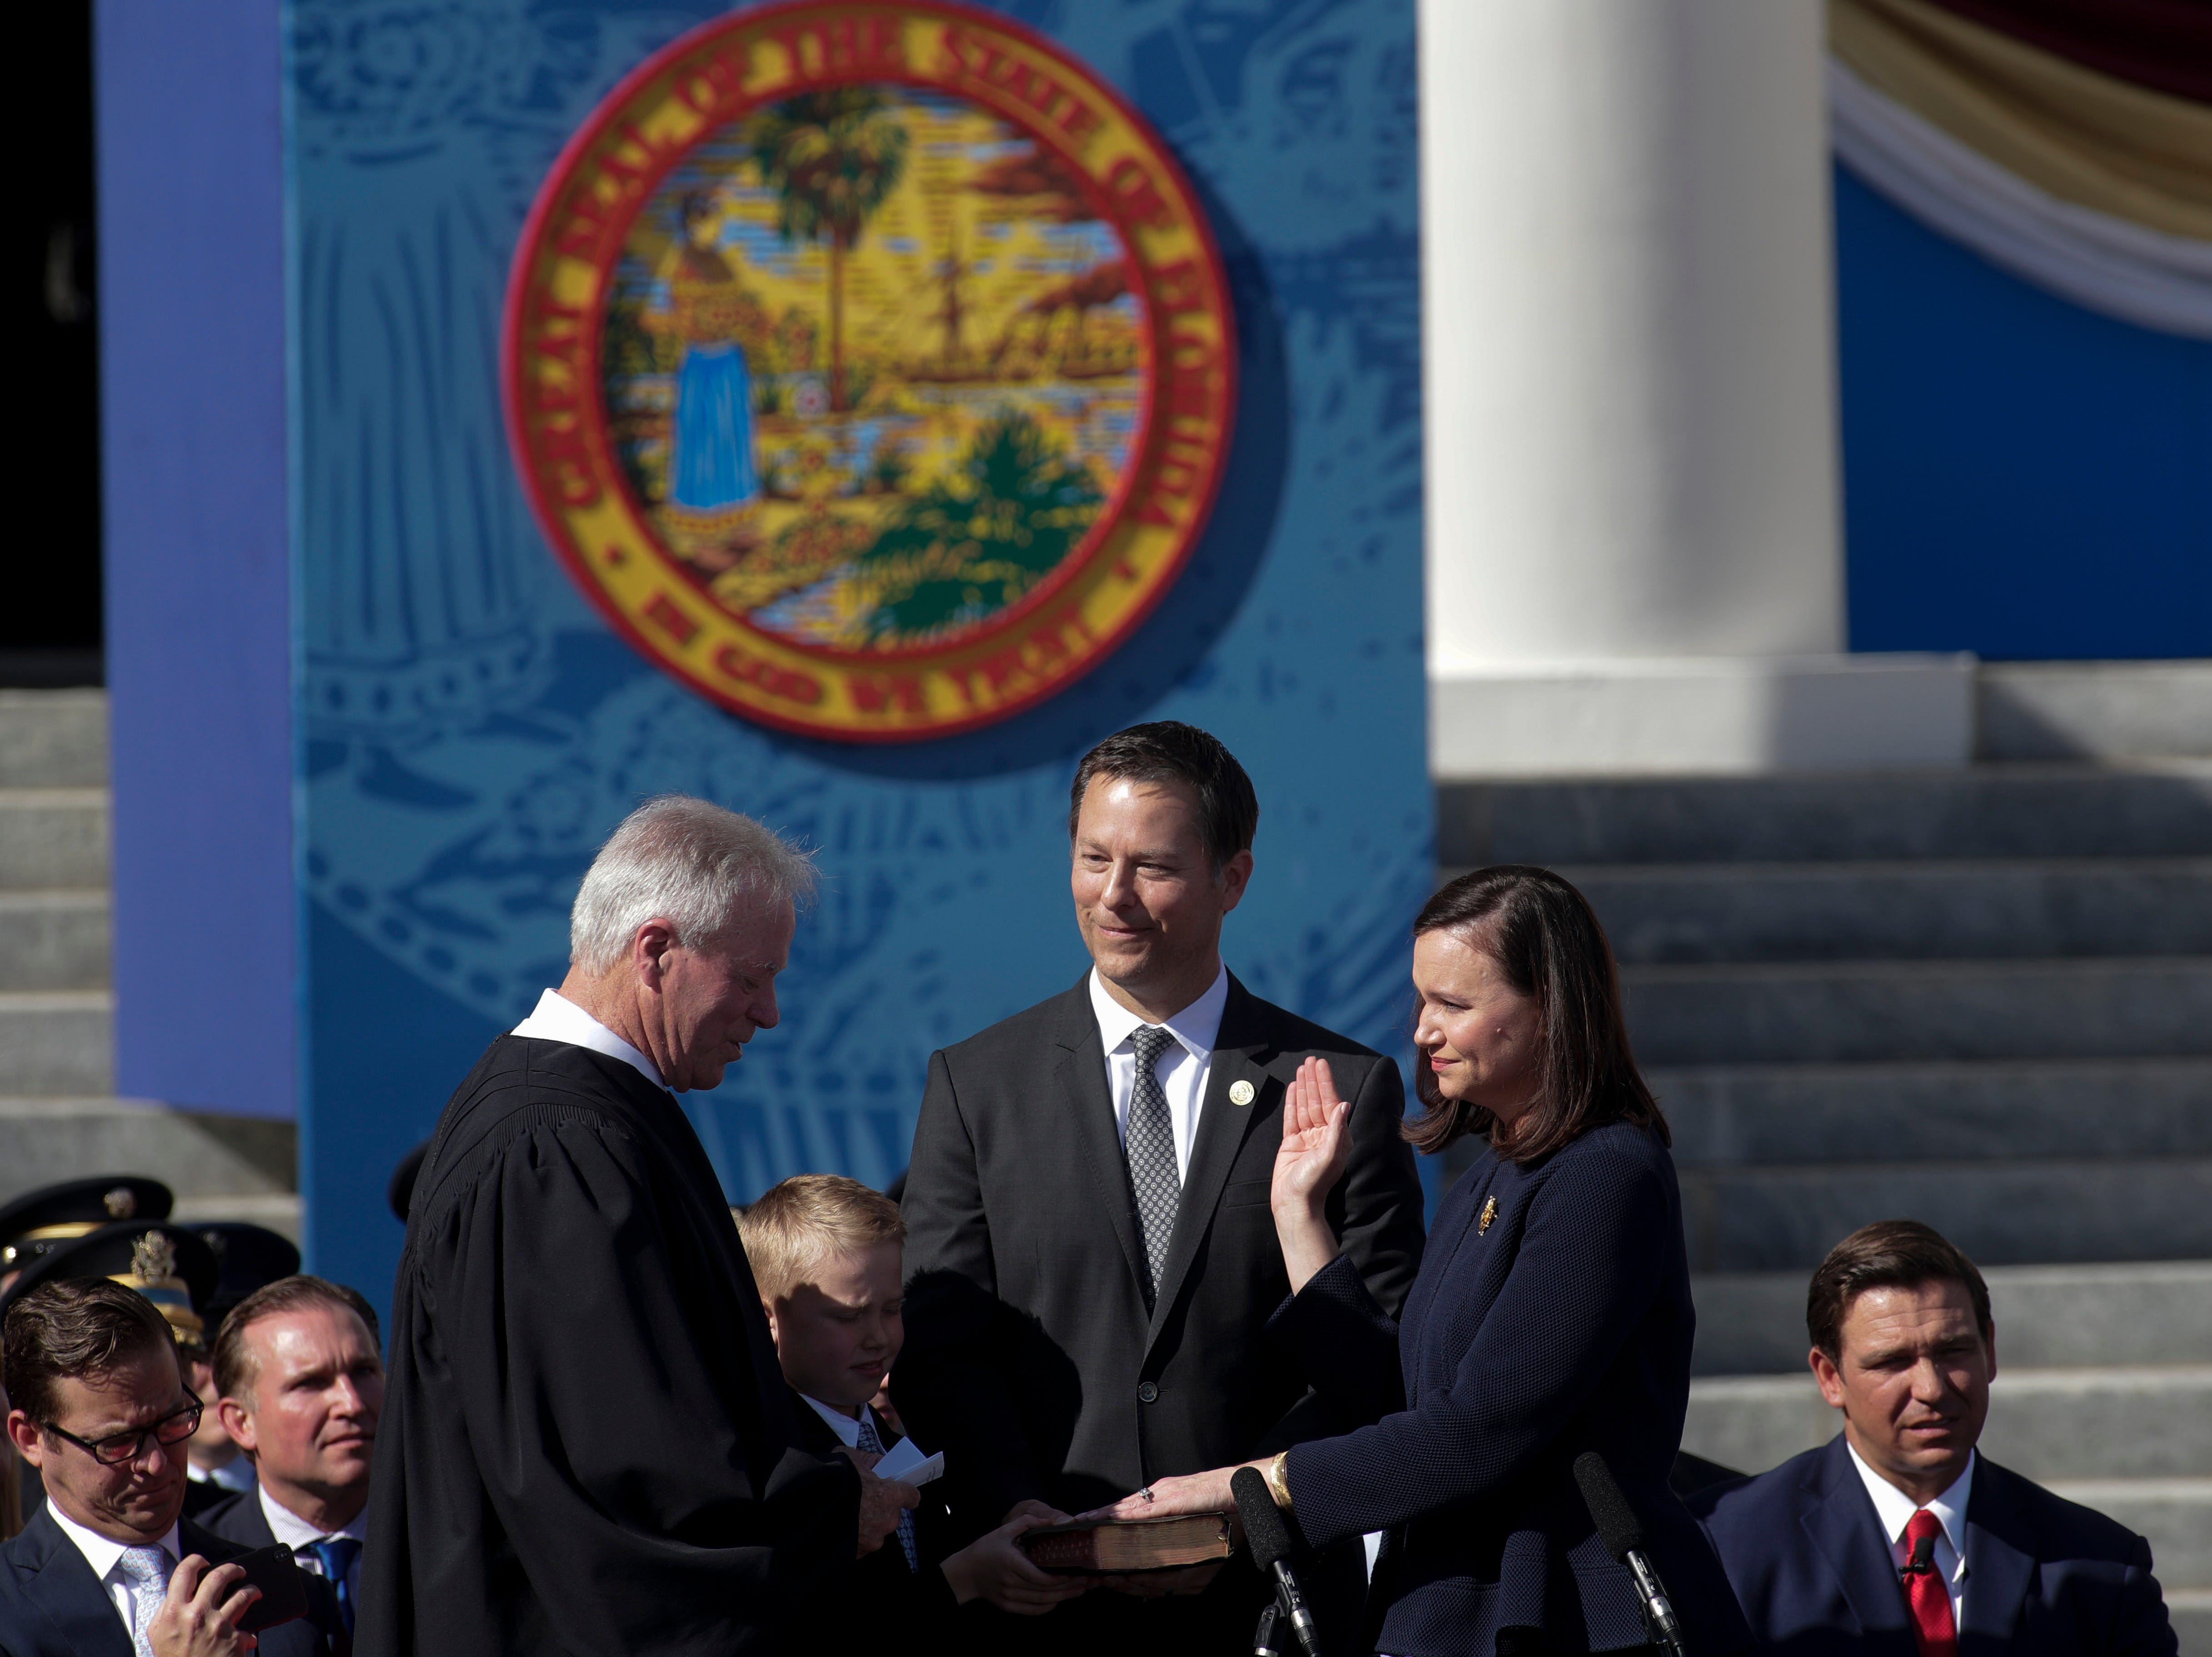 Attorney General Ashley Moody takes the oath of office administered by her father Judge James S. Moody with her husband Justin Duralia and their son Connor Duralia during the 2019 inauguration ceremony on the steps of the Historic Capitol Building in Tallahassee Tuesday, Jan. 8, 2019.